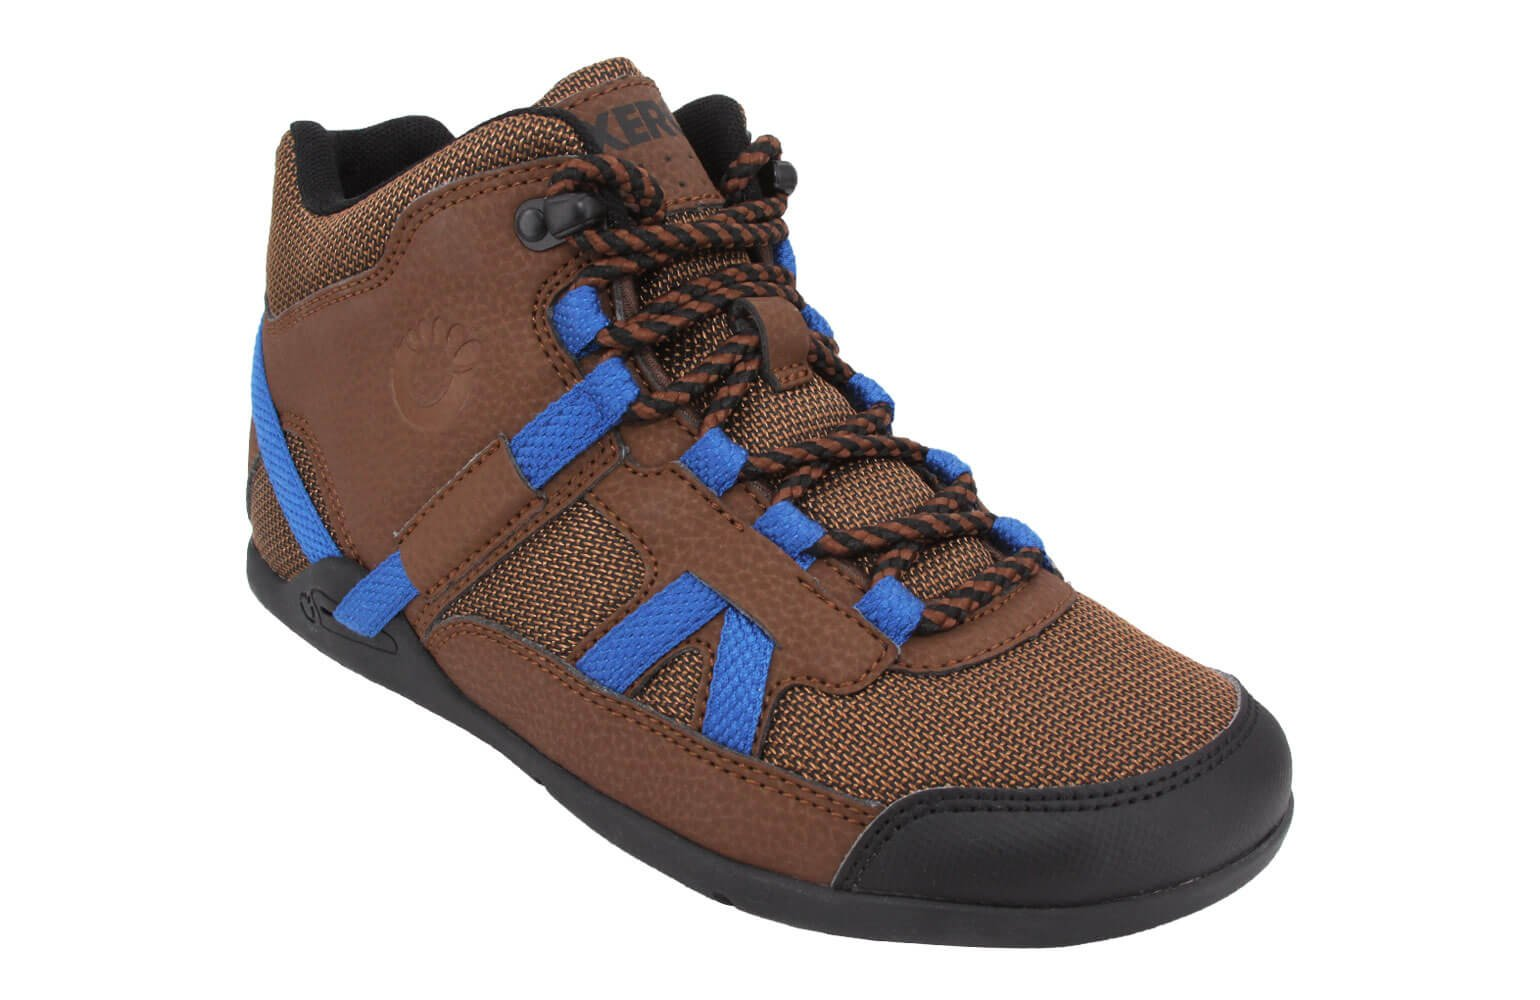 43d124f2075 DayLite Hiker - Women. Amazingly comfortable